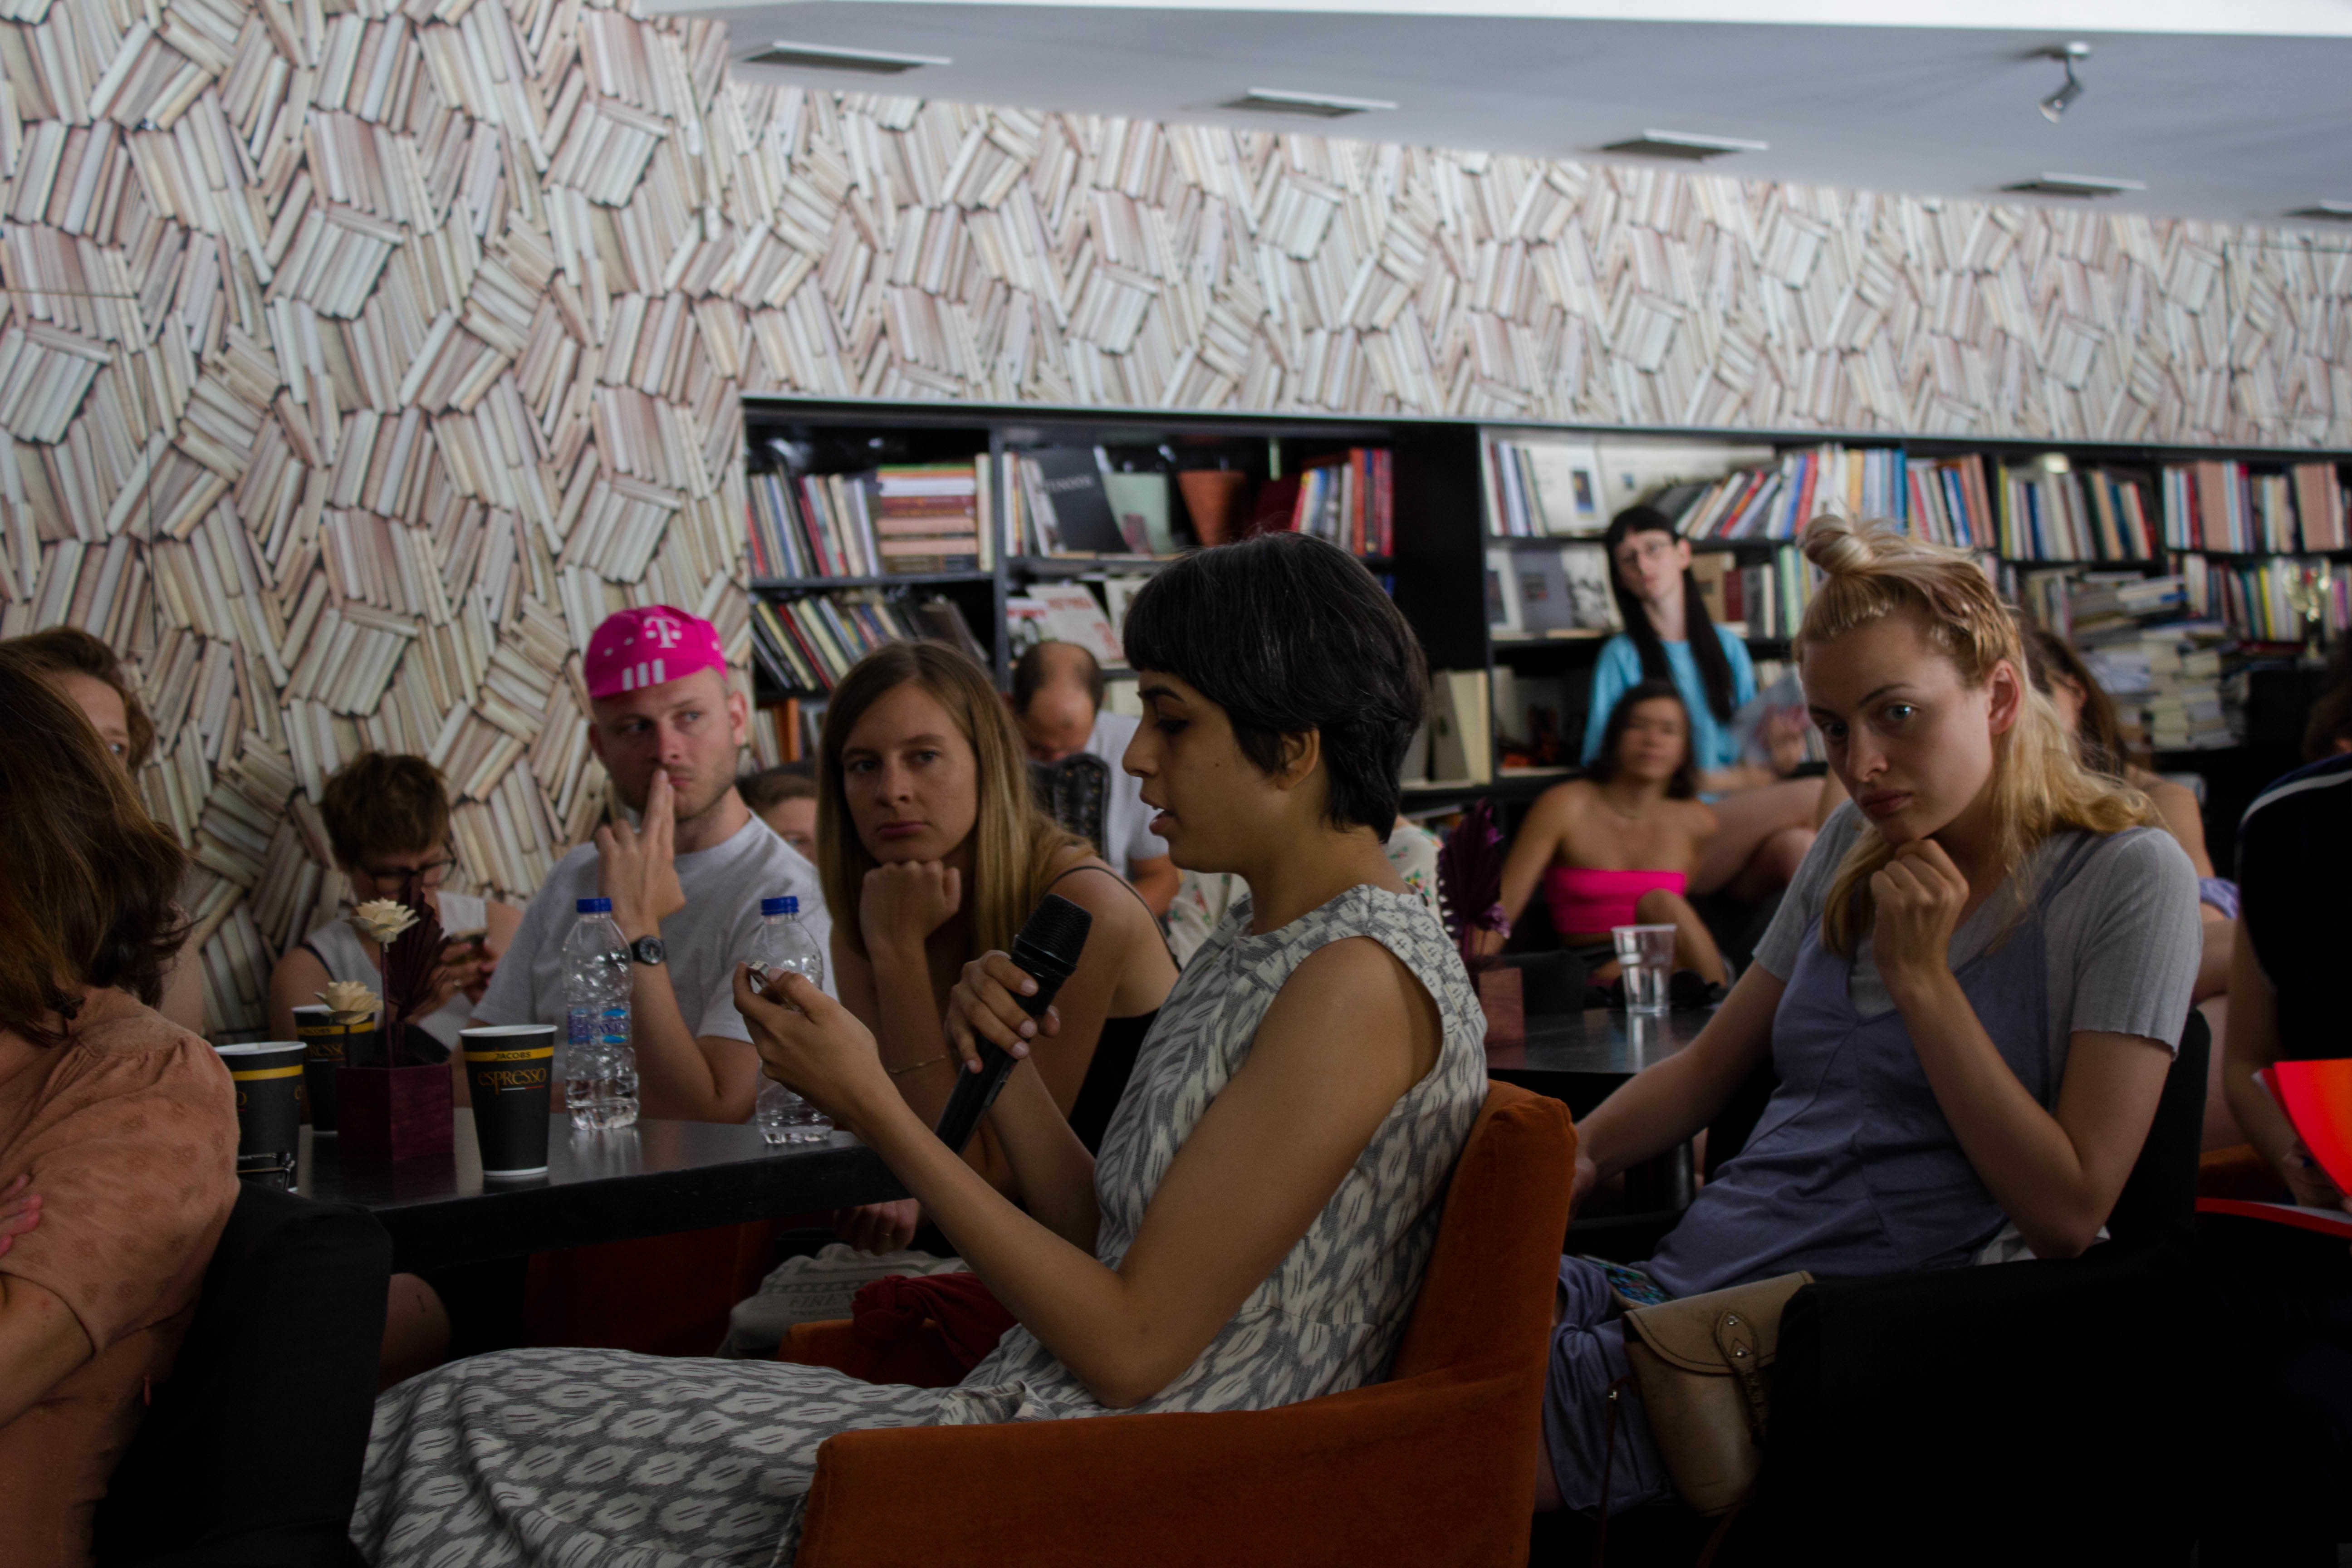 COOP SUMMIT 2018. Final presentation by the 'Proximity Aesthetics' study group at the Polis Art Cafe in Athens on June 2. In the picture: Vinita Gatne reading from the Proximity Aesthetics website on her phone. Photo: Silvia Ulloa for DAI Roaming Academy.